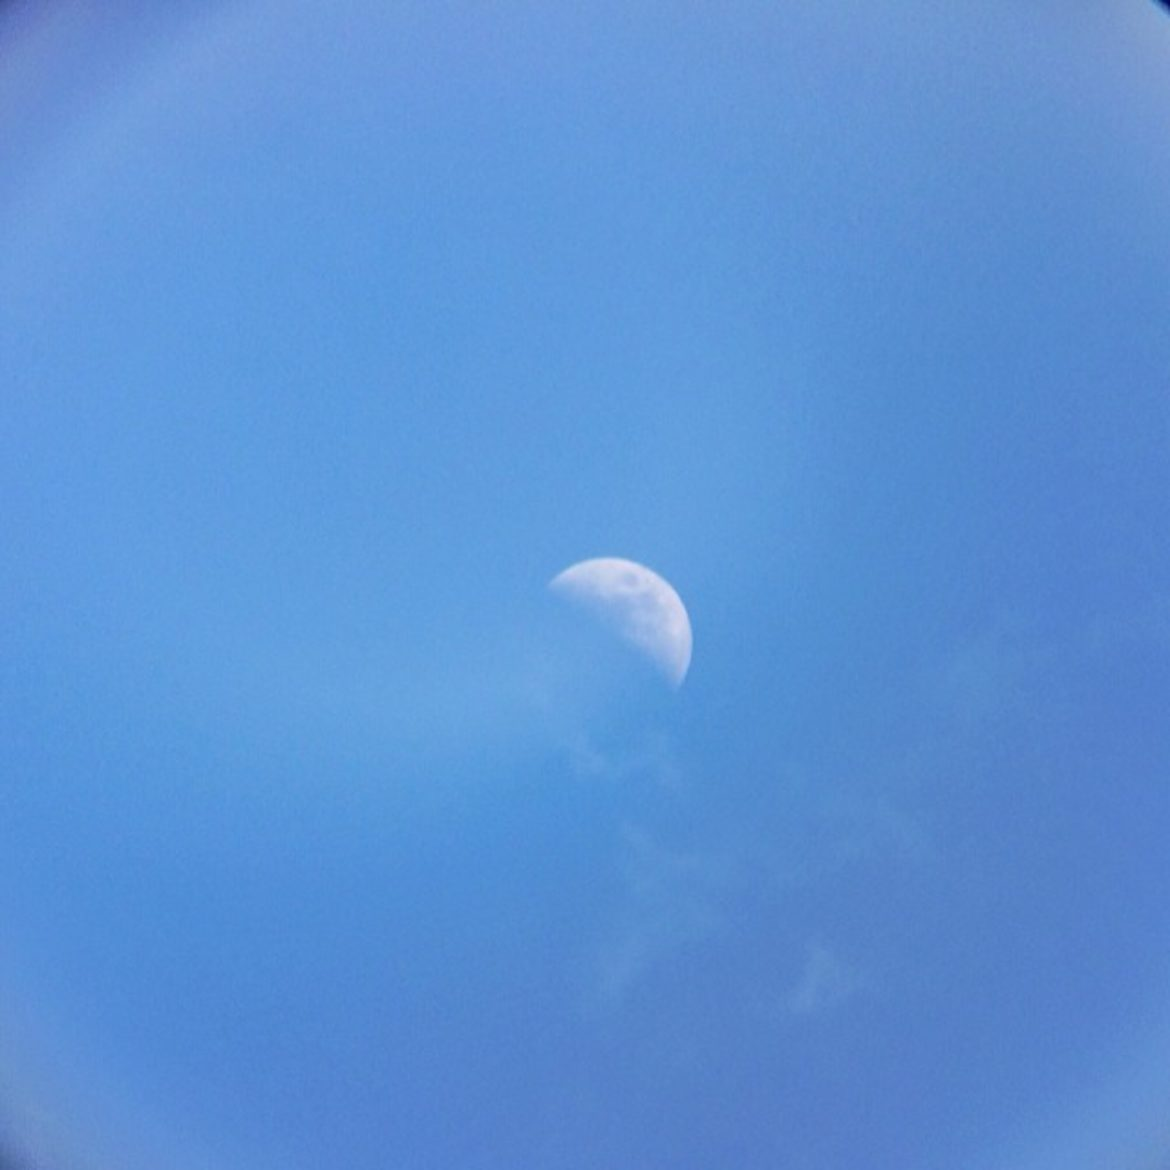 Moon in day light